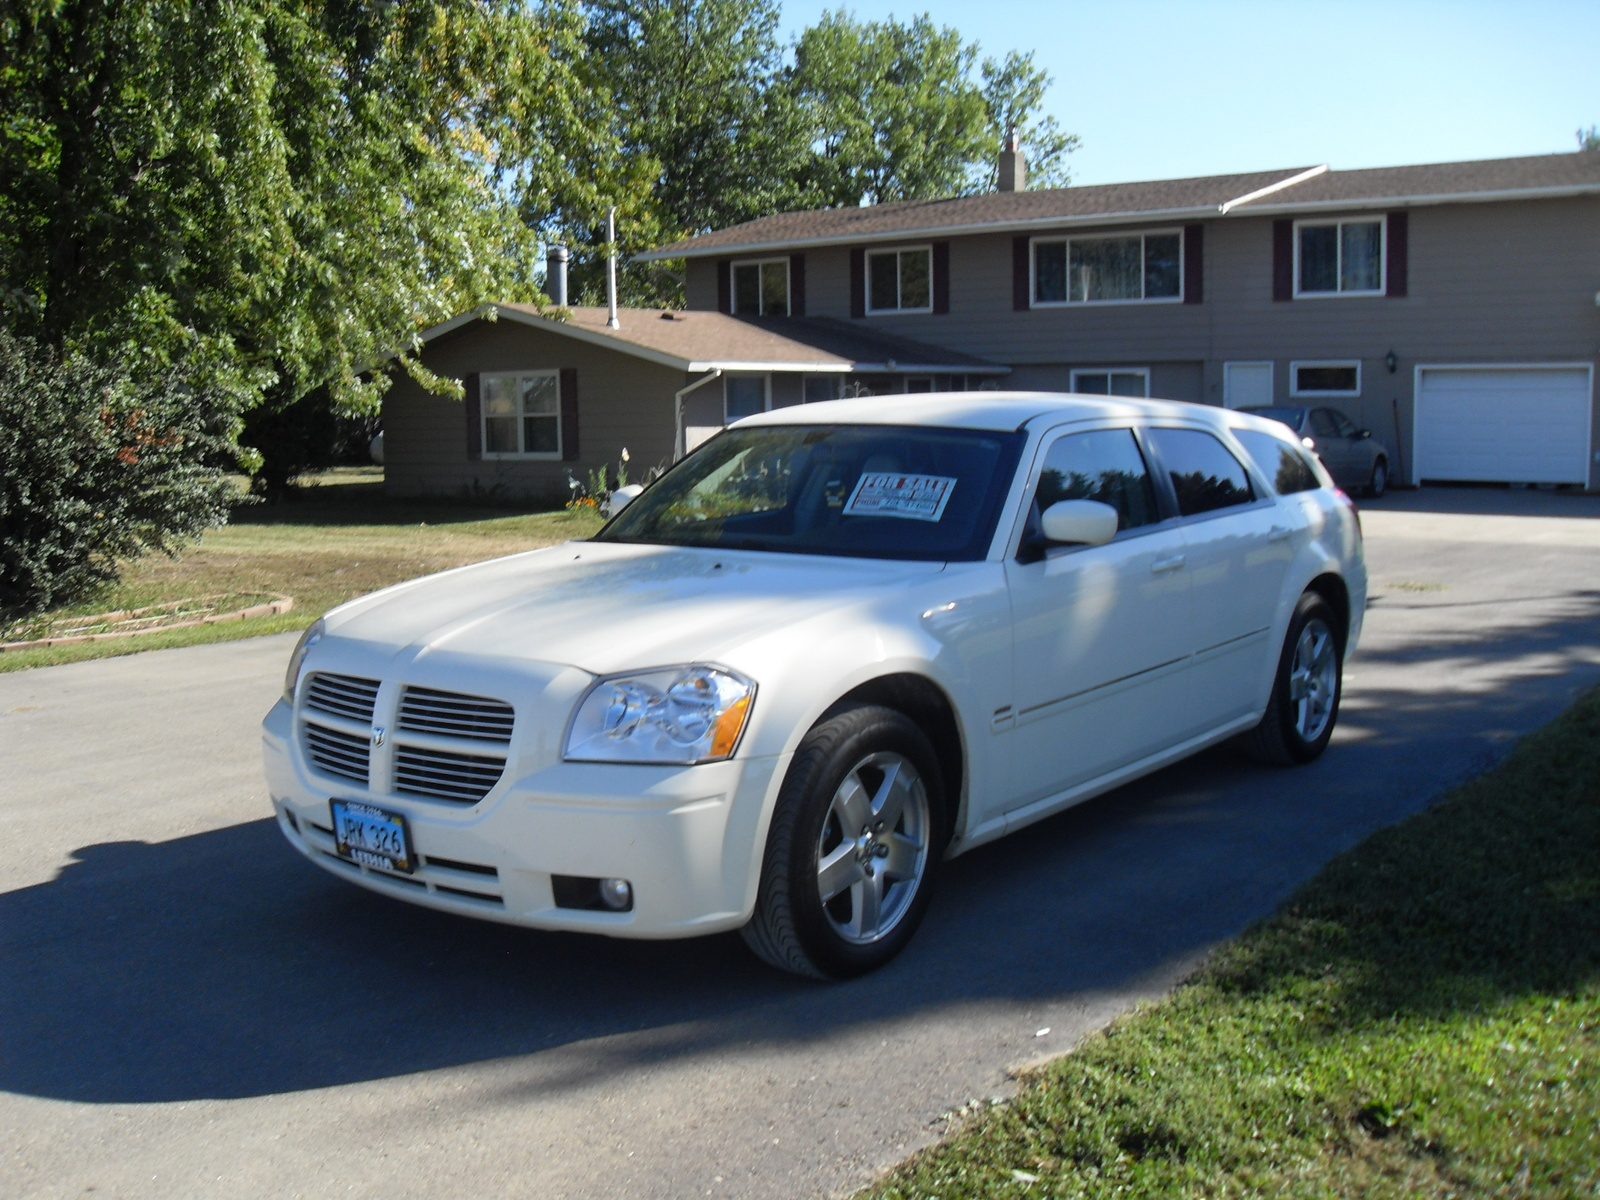 2005 Dodge Magnum R/T AWD - Overview - CarGurus